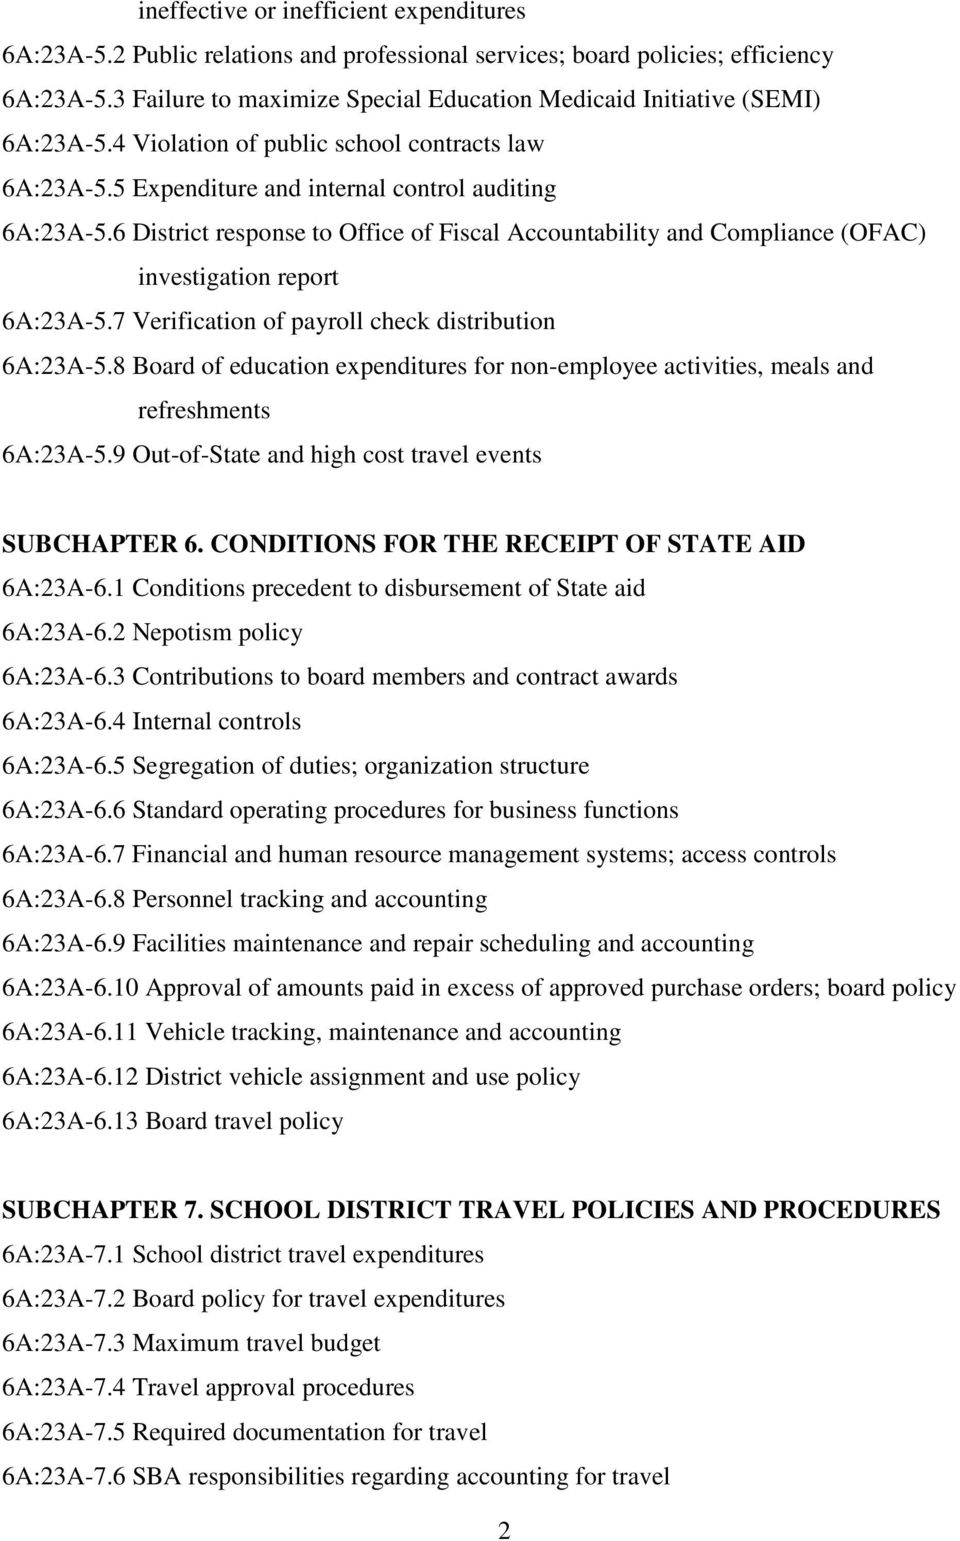 6 District response to Office of Fiscal Accountability and Compliance (OFAC) investigation report 6A:23A-5.7 Verification of payroll check distribution 6A:23A-5.